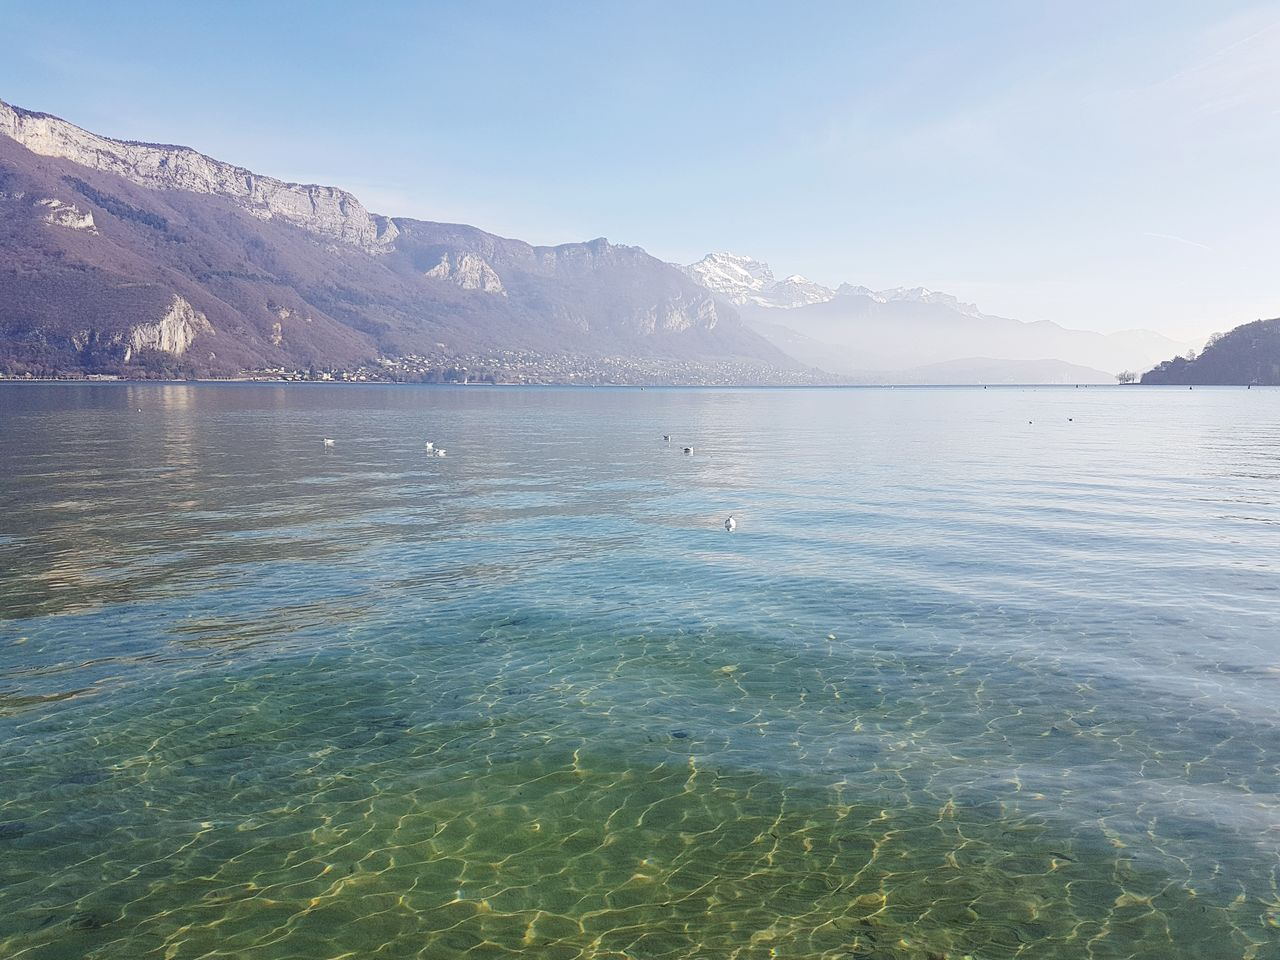 water, beauty in nature, scenics - nature, mountain, tranquil scene, waterfront, tranquility, sea, sky, idyllic, nature, day, no people, non-urban scene, blue, mountain range, outdoors, remote, turquoise colored, view into land